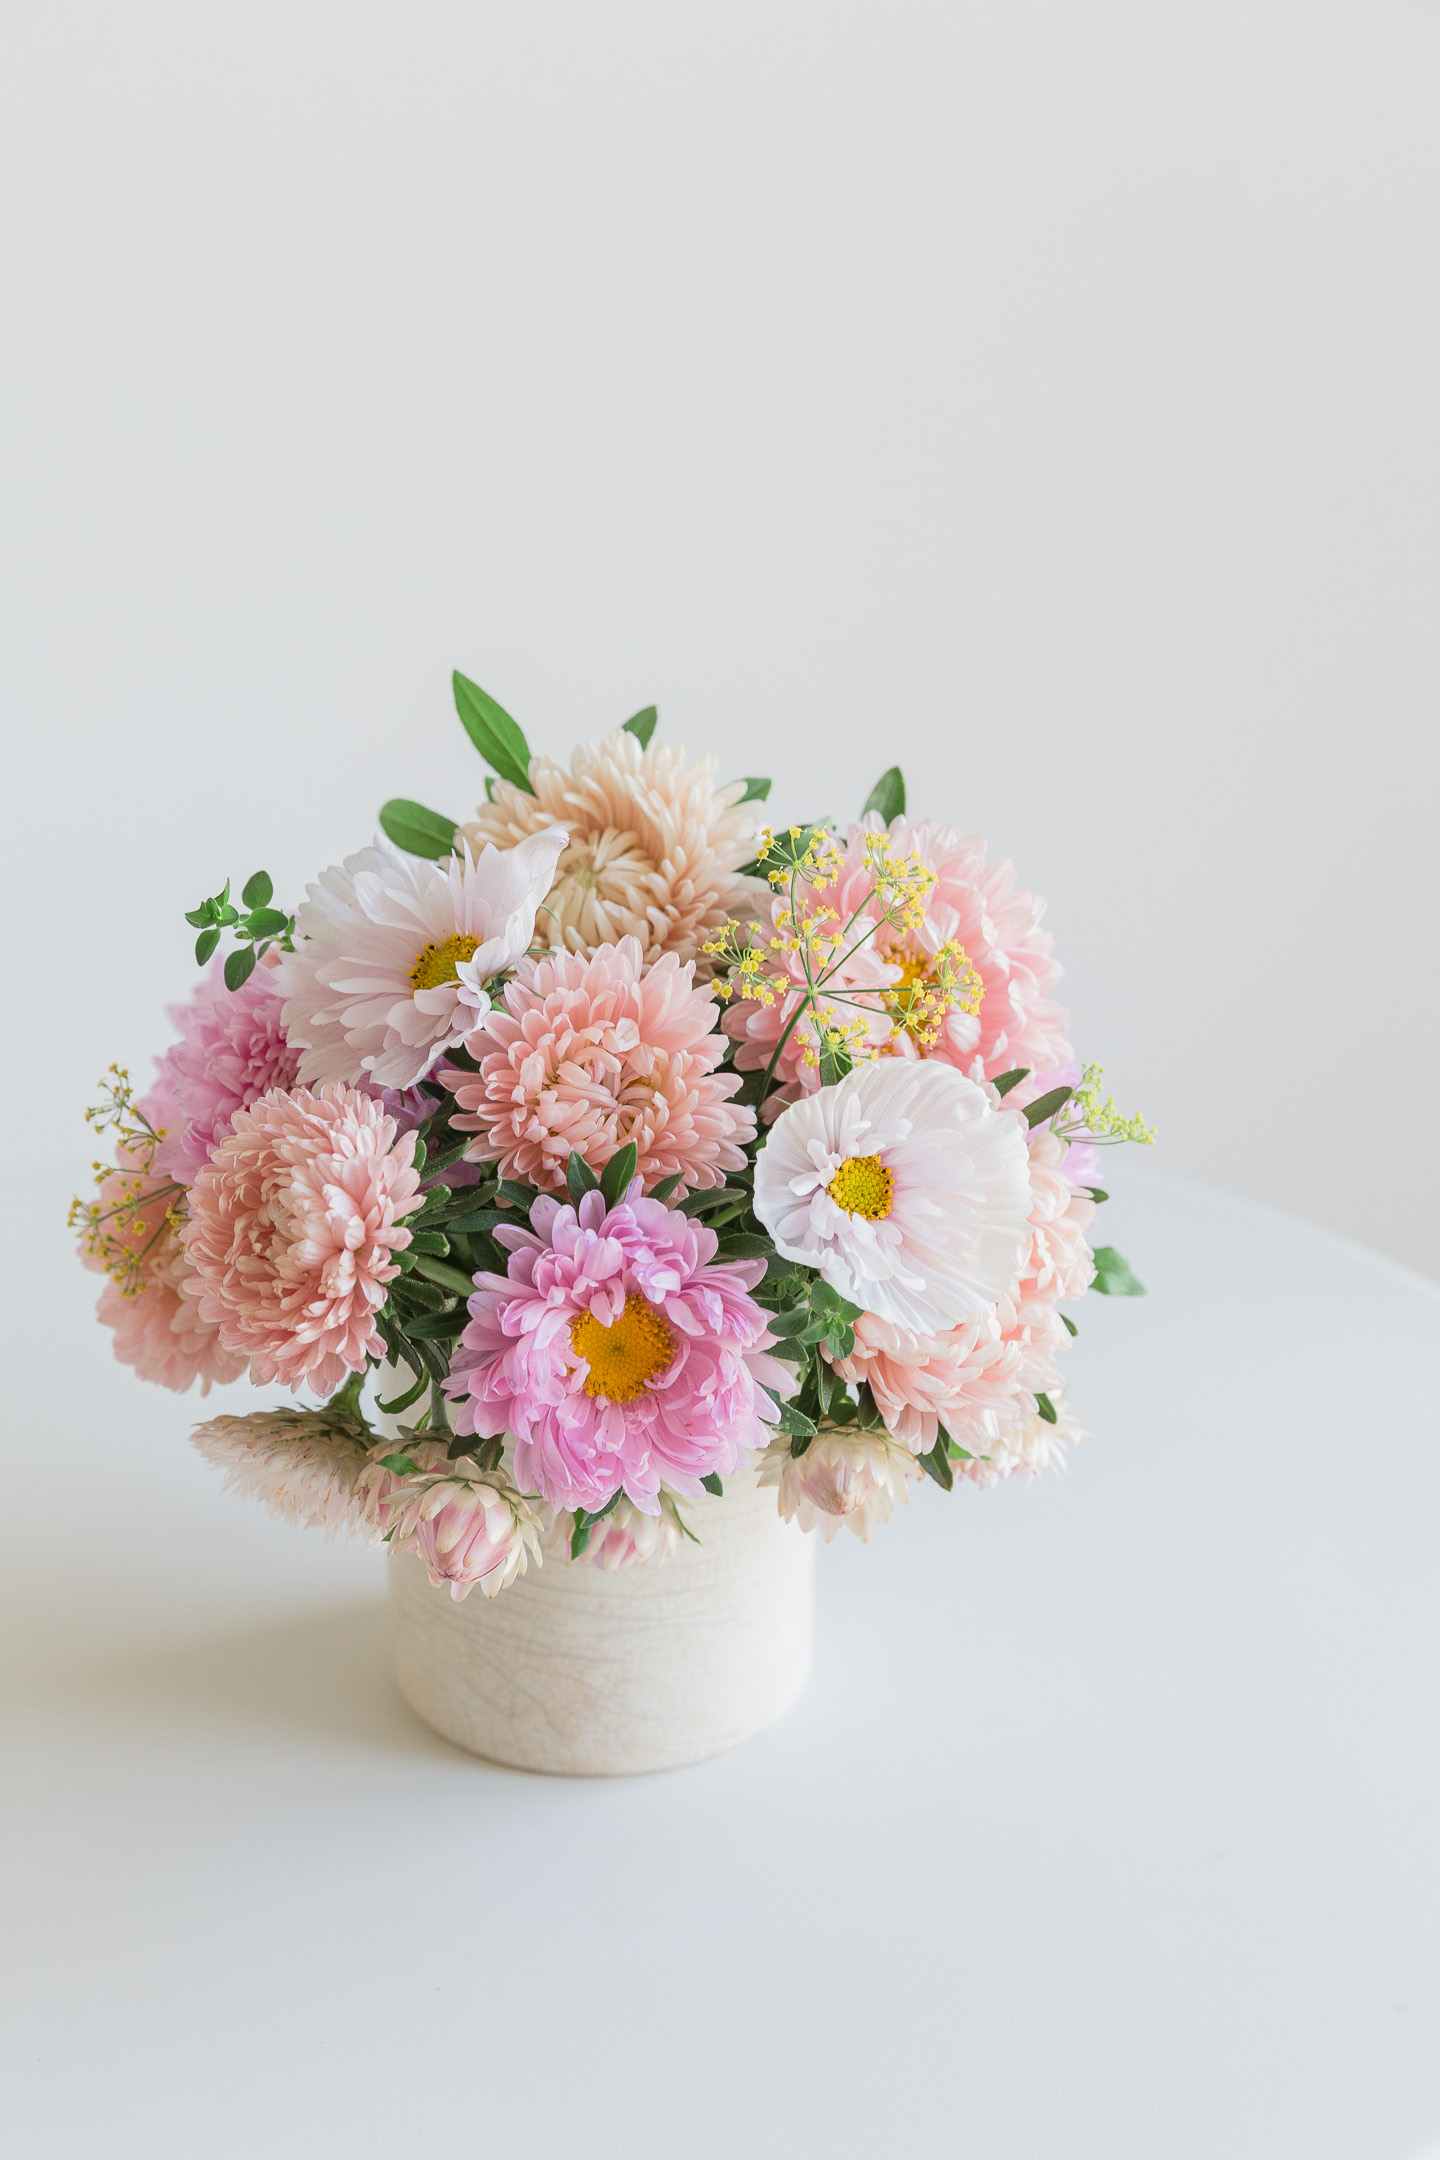 A flower arrangement containing China Asters, Cosmos, Strawflowers and Dill.